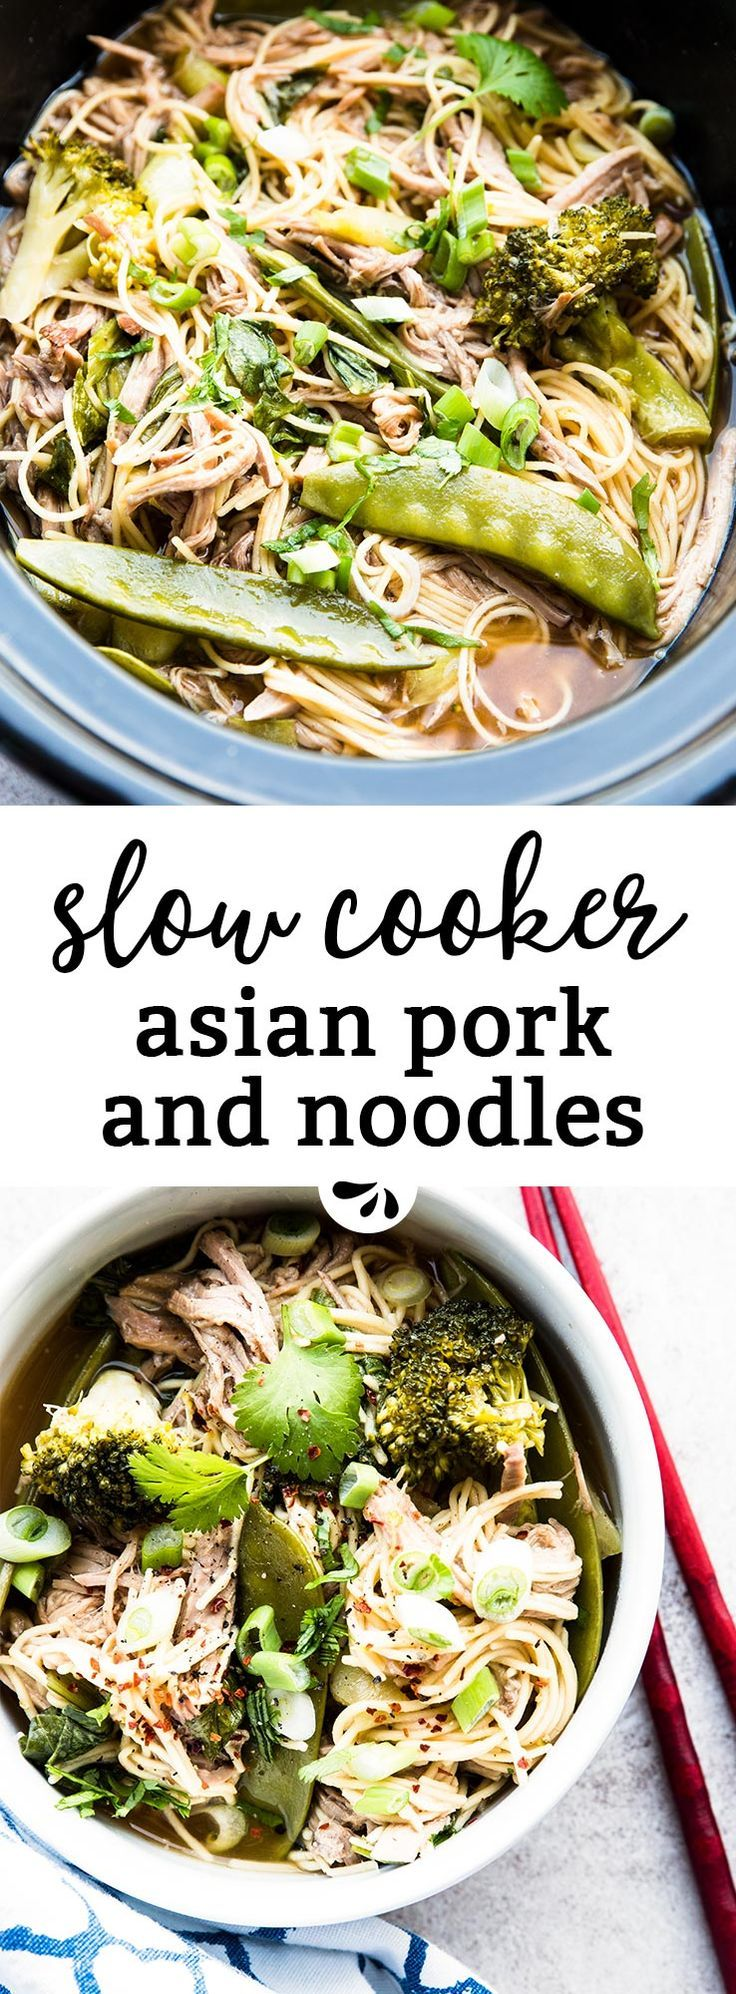 A great slow cooker recipe for summer, these Asian pork noodles are made ENTIRELY in the crockpot! You don't even need to brown the meat, so it heats up your kitchen as little as possible. Made with plenty of fresh vegetables and a from scratch sauce, it's a healthy dinner your whole family will enjoy. You could even make the meat by itself for a fun Asian twist on pulled pork sliders! Cooks on HIGH for 6 hours before the vegetables and noodles get added. All regular ingredients you already…